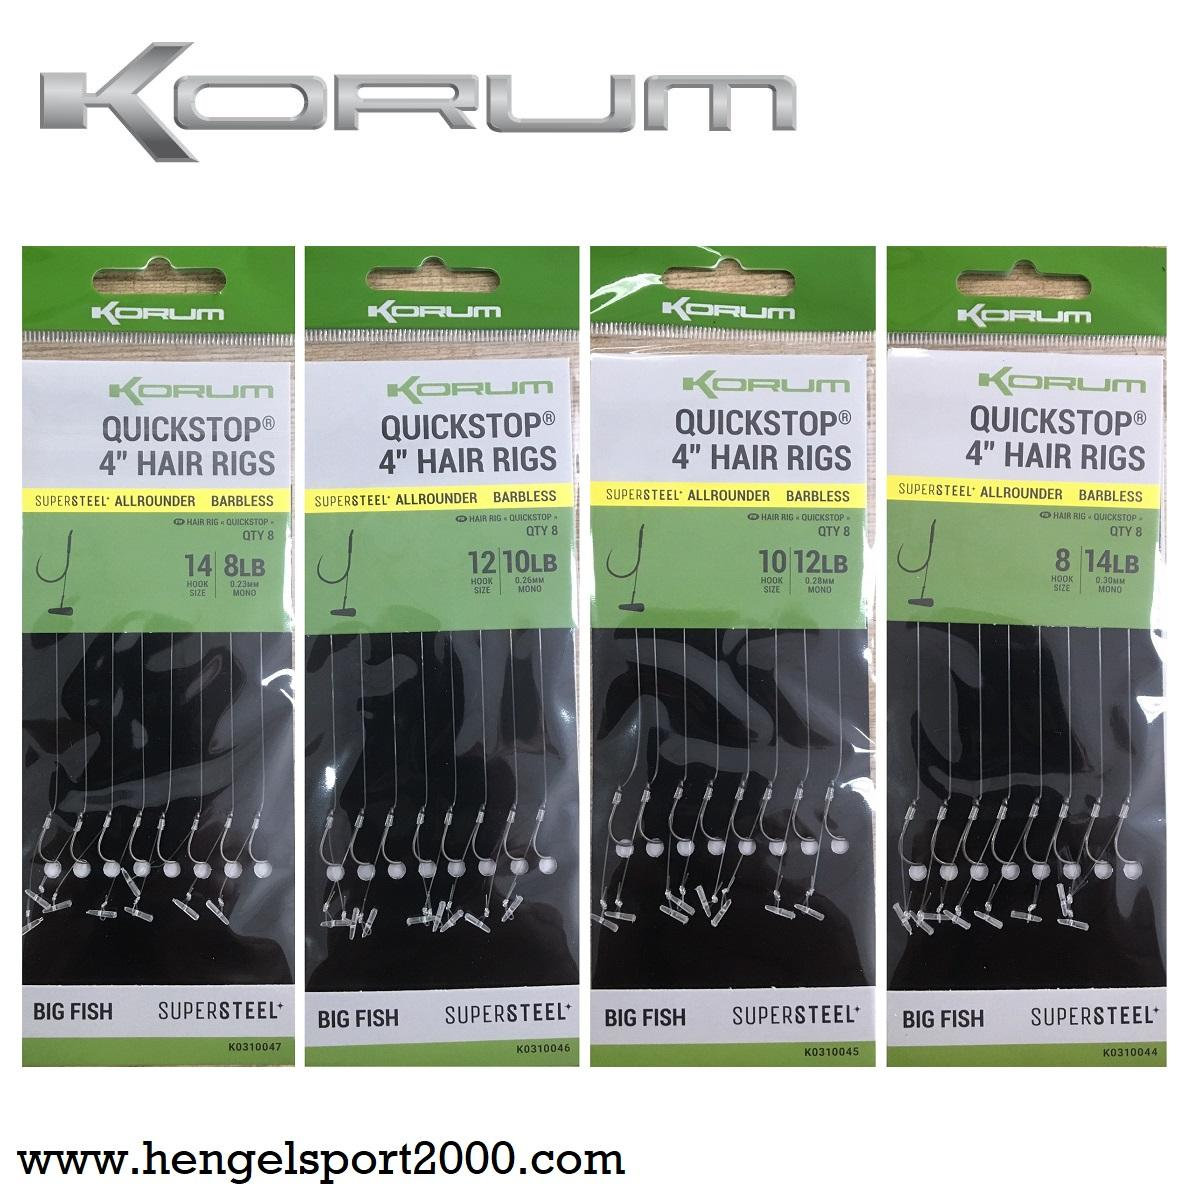 Korum Quickstop Hair Rigs Barbless